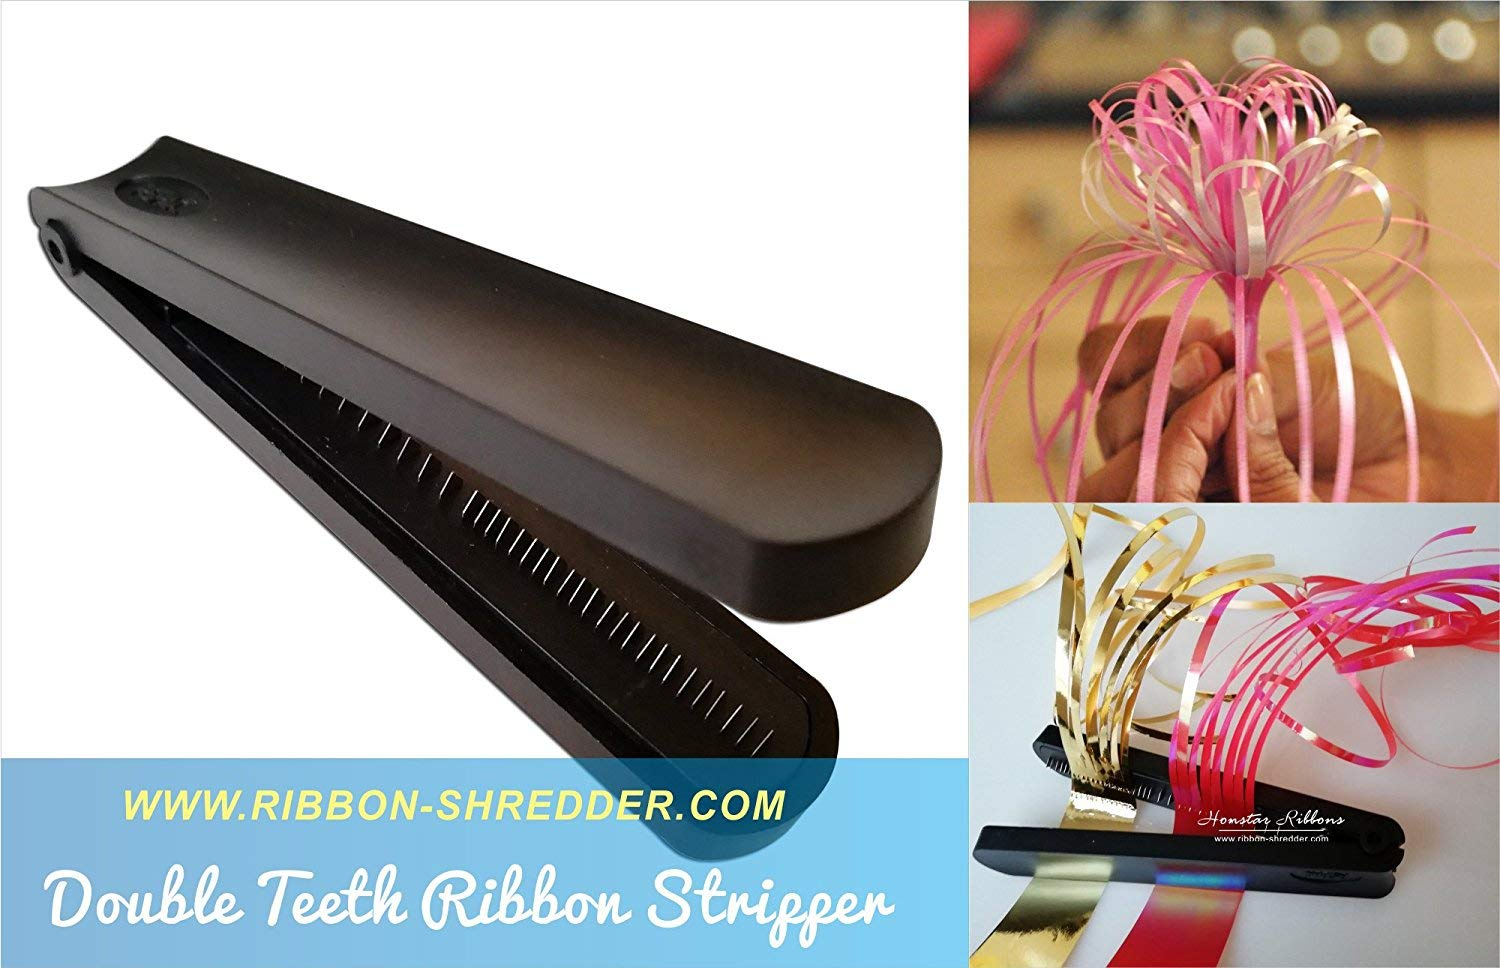 Ribbon Shredder Curler with Stainless Steel Blade Teeth for Laminated and Metallic Ribbons (Double)- RSPAC (TM) - Gift Wrapping Tool Holdsun HS-RS5